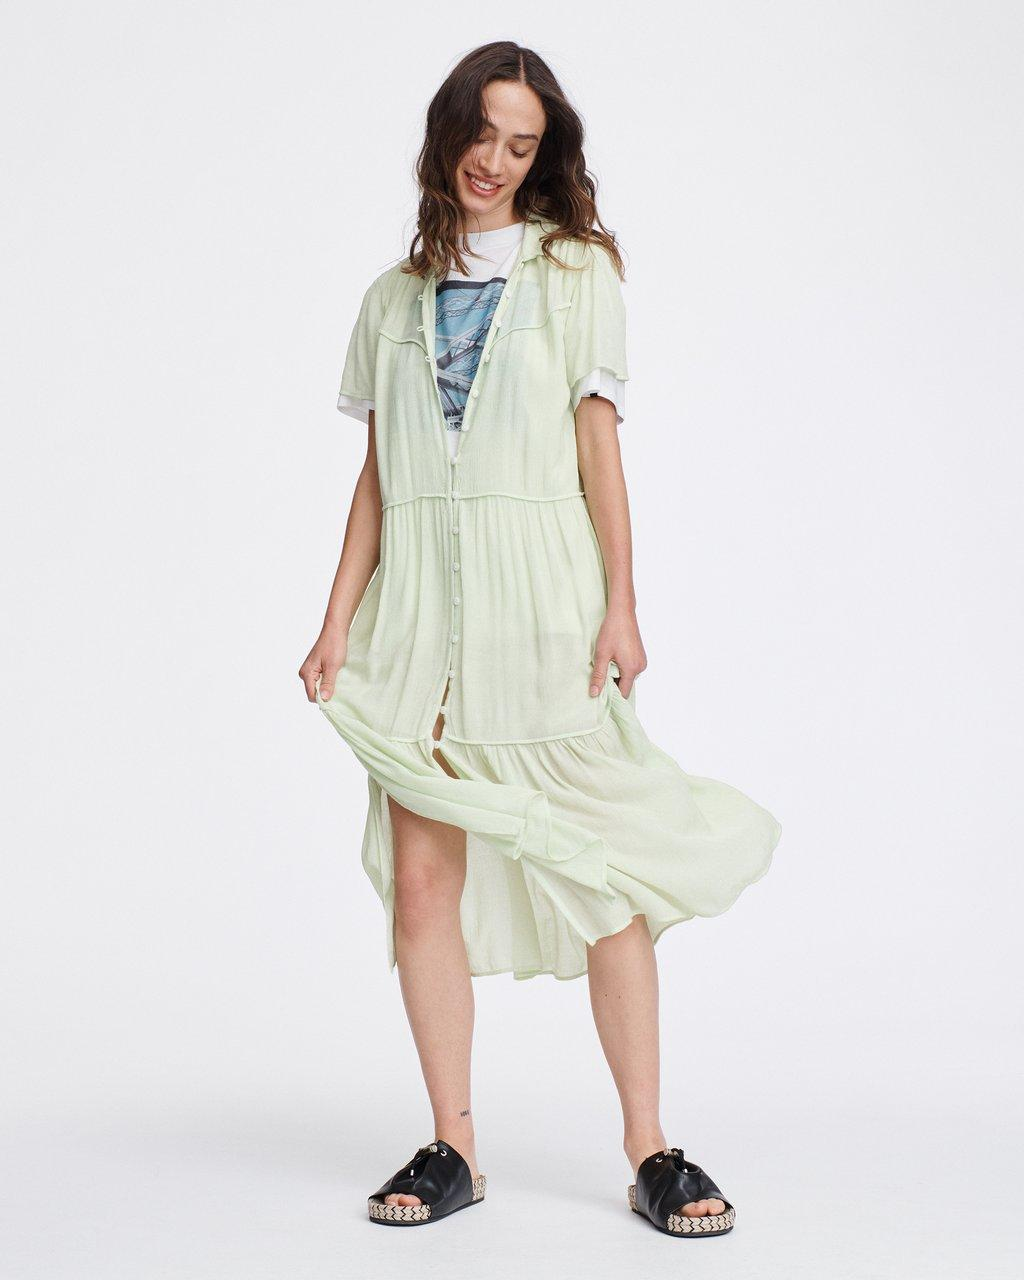 LIBBY Short Sleeve DRESS